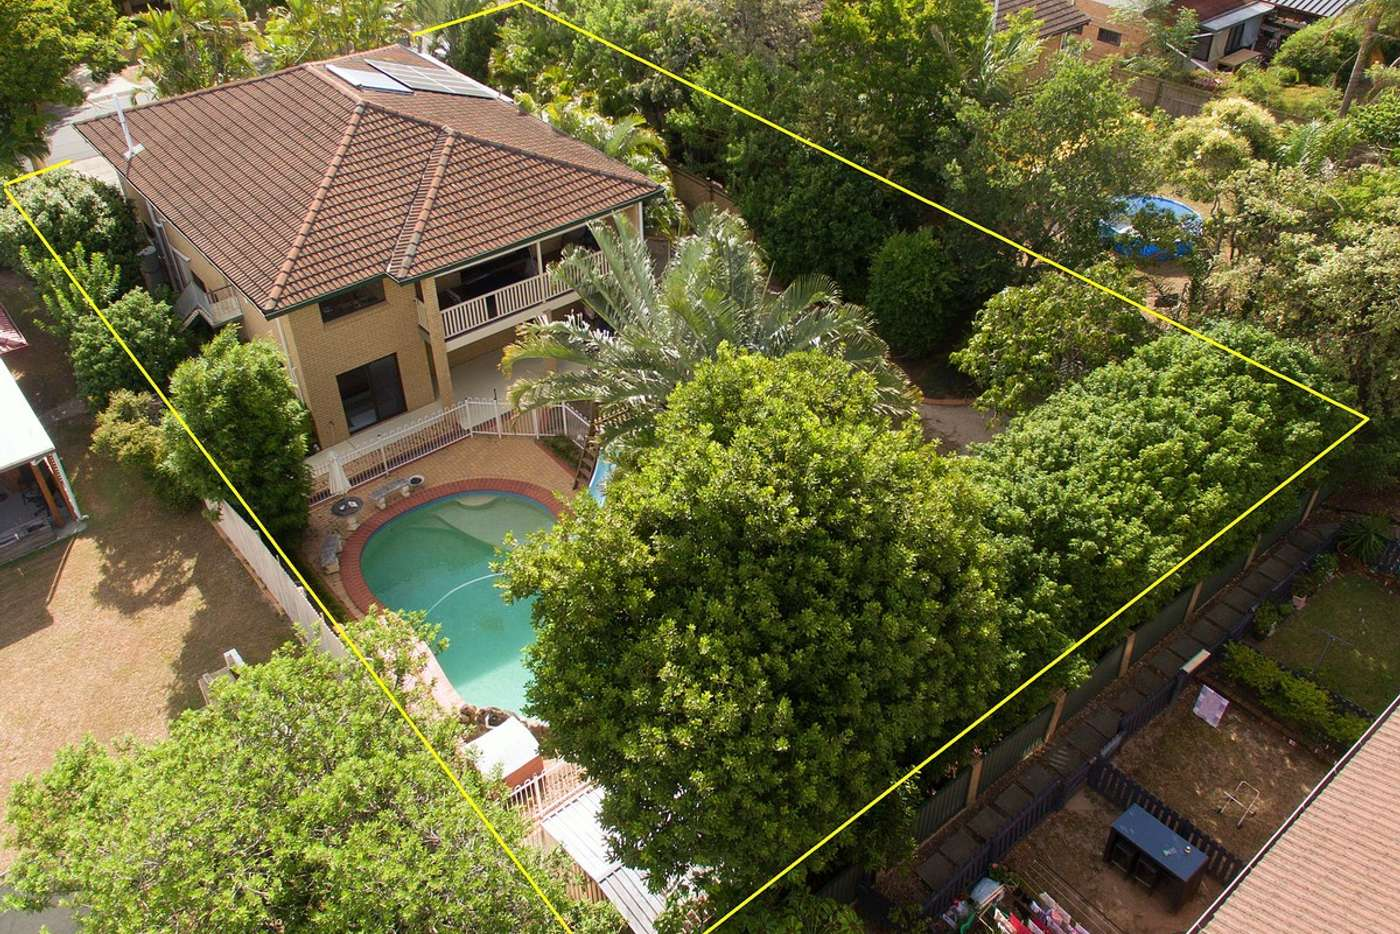 Main view of Homely house listing, 10 Lorimer Street, Springwood QLD 4127